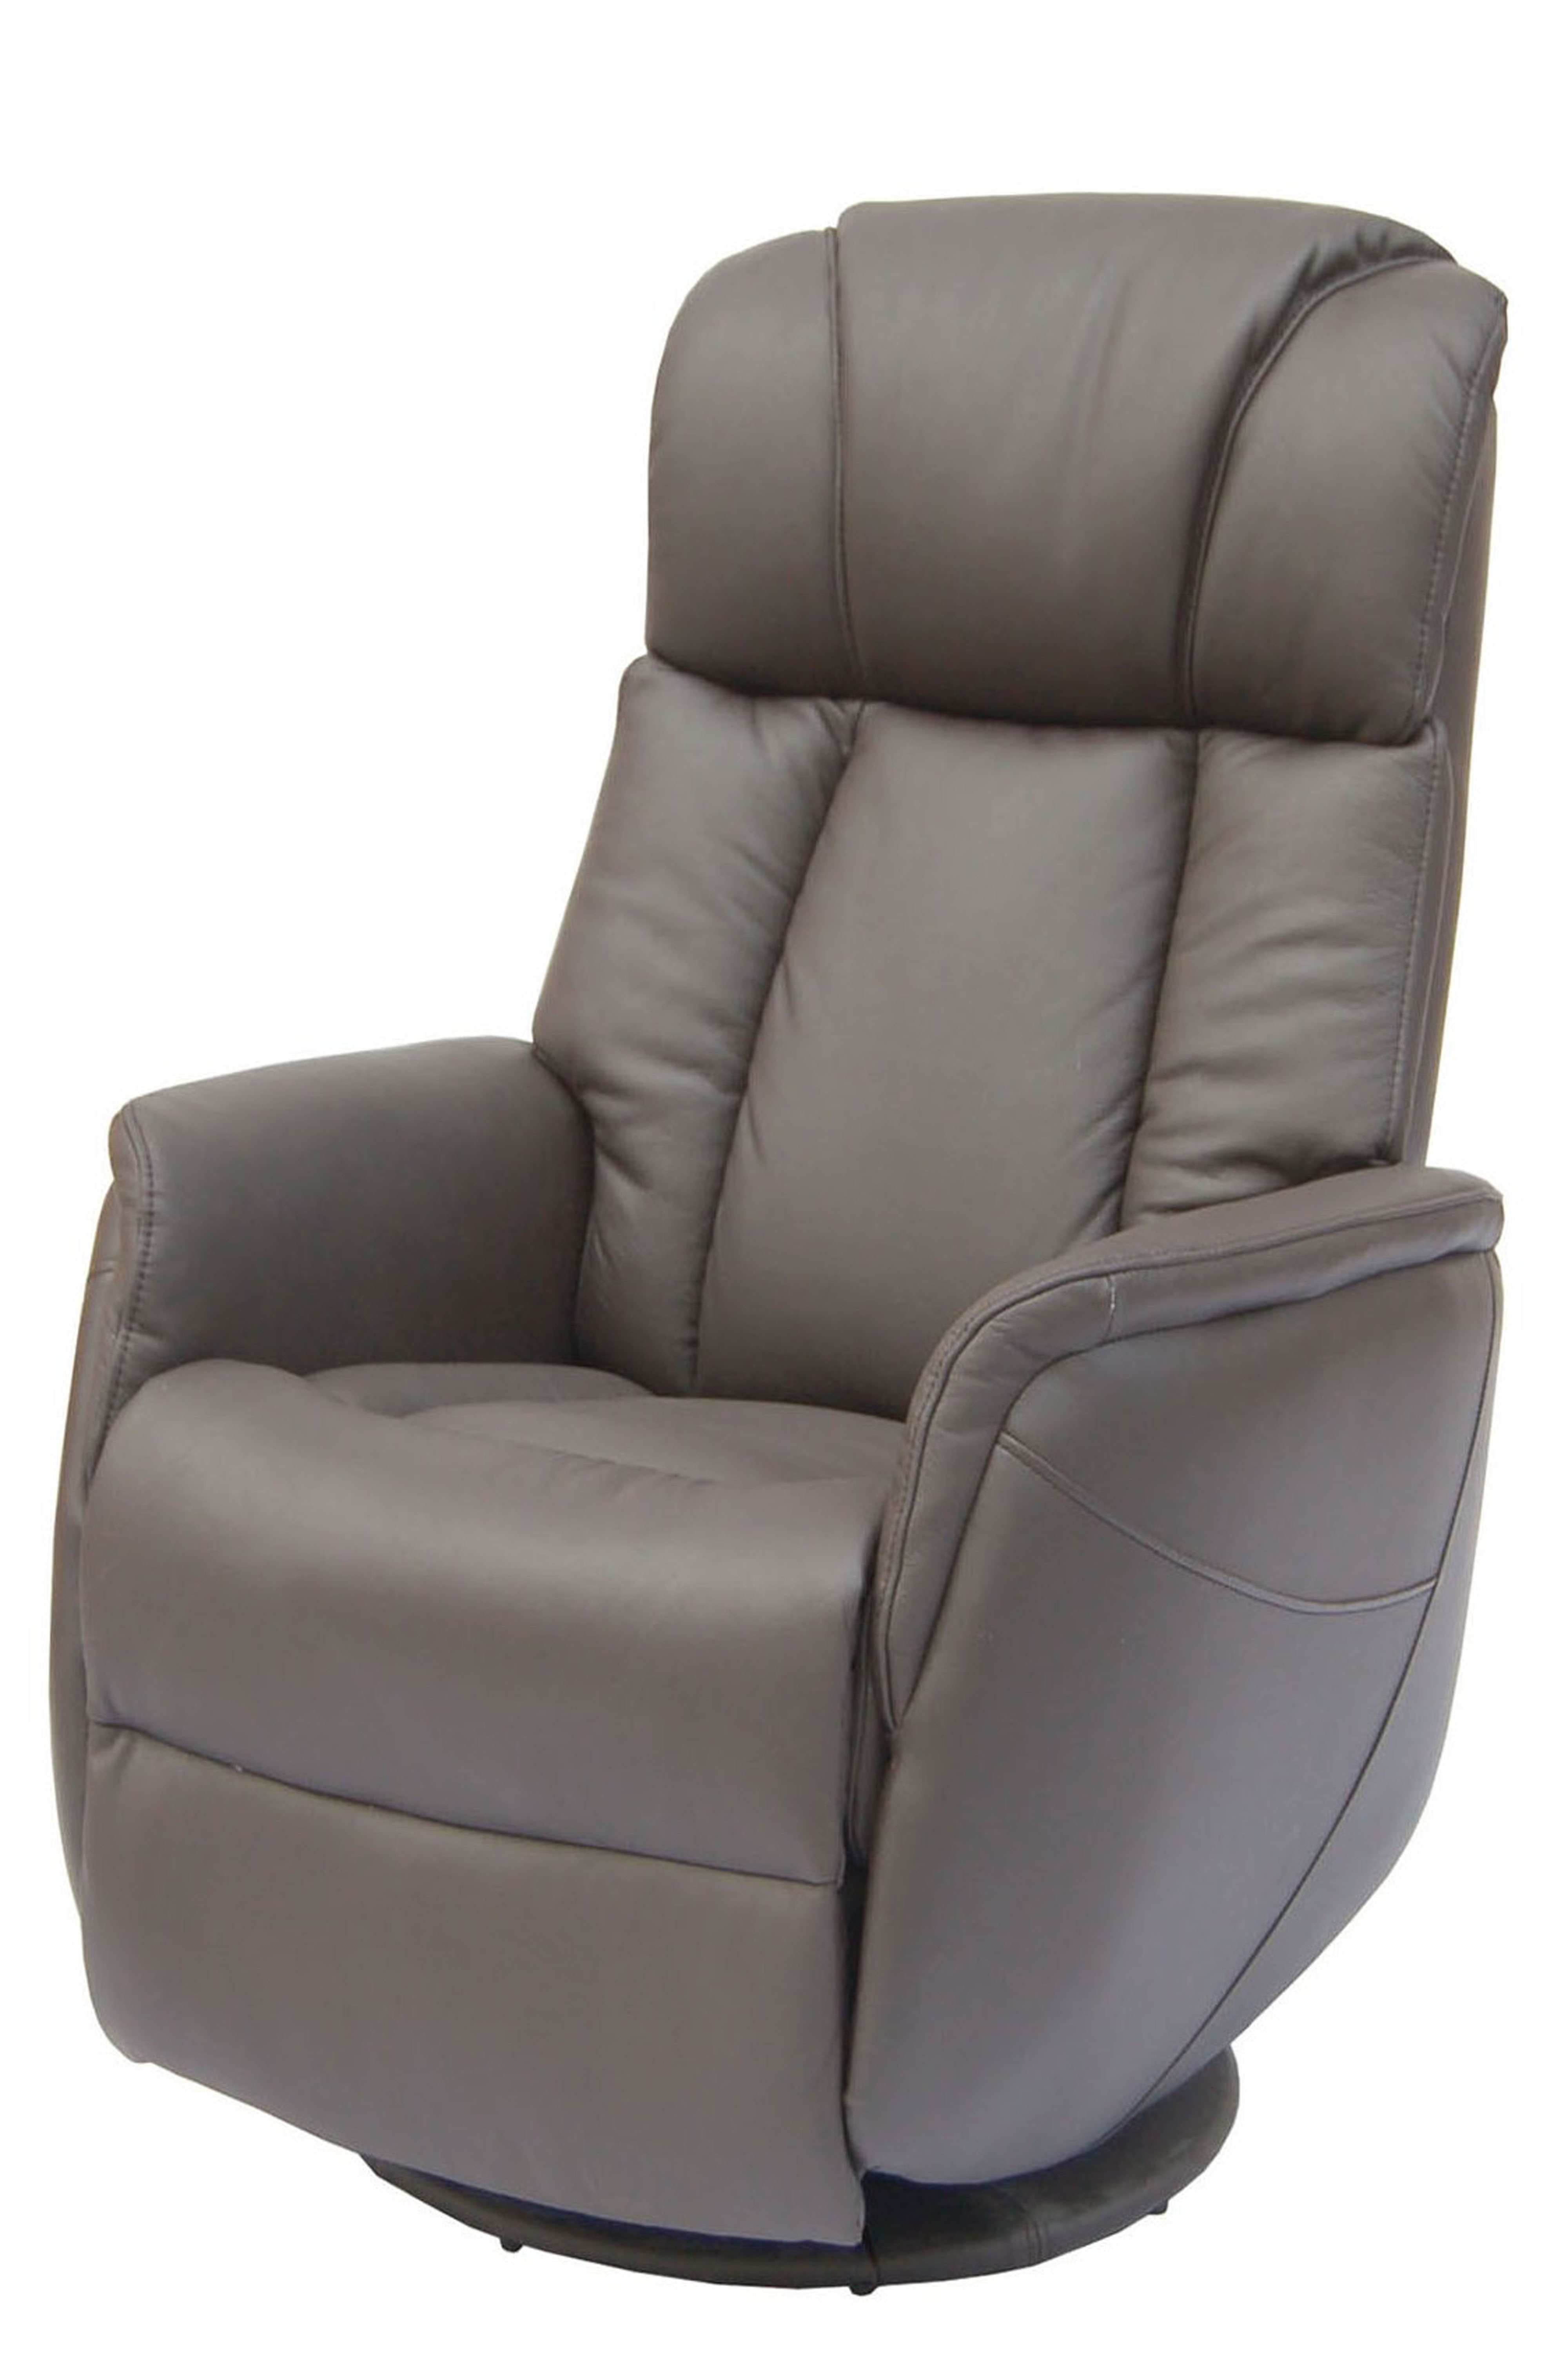 Trendy Espresso Leather Swivel Chairs In Gfa Sorrento Electric Rock & Swivel Leather Recliner Chair – Espresso (View 2 of 20)